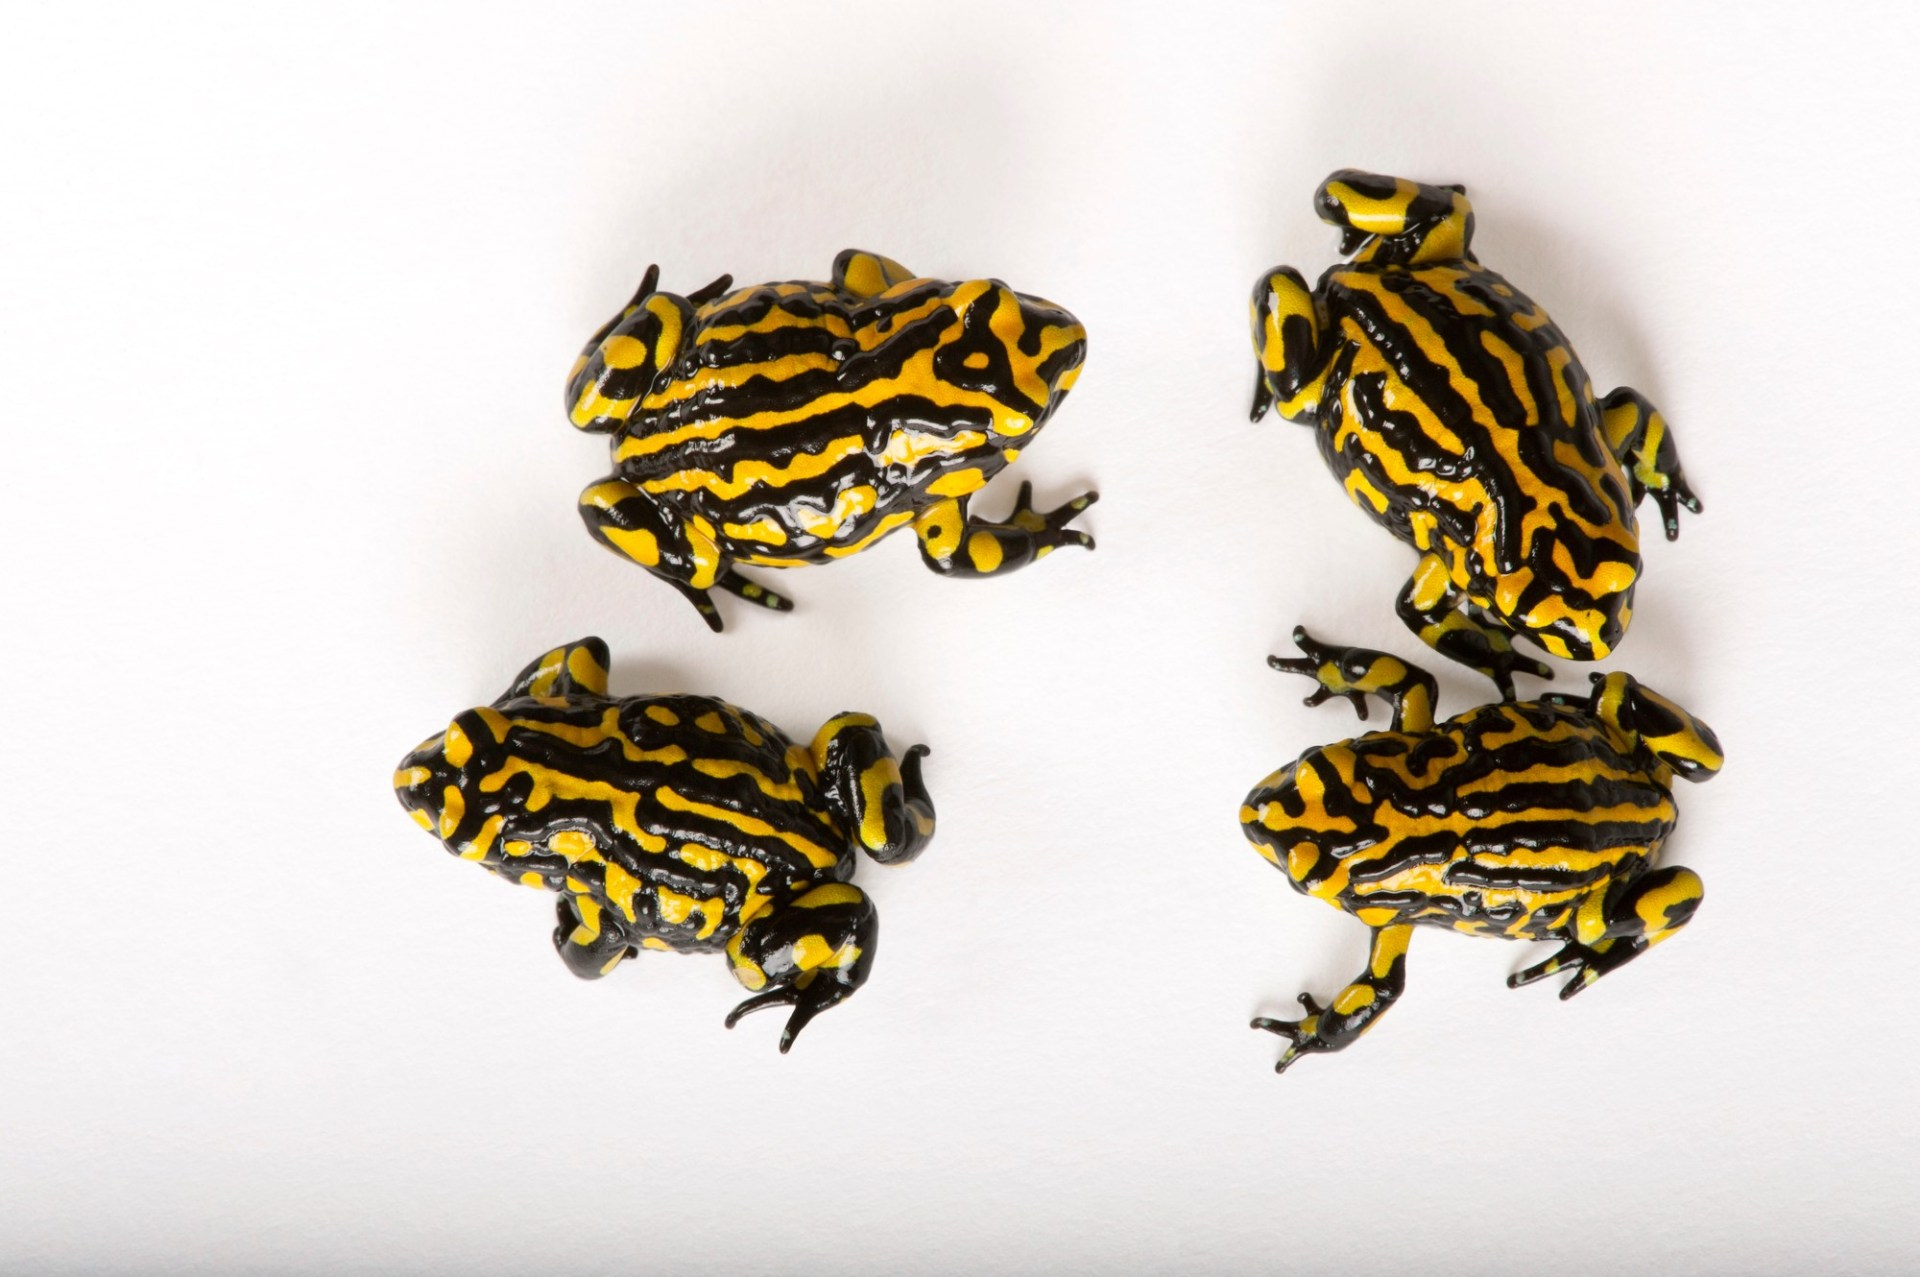 Southern corroboree frogs (Pseudophryne corroboree) a critically endangered species at the Healesville Sanctuary in Healesville, Victoria, Australia.